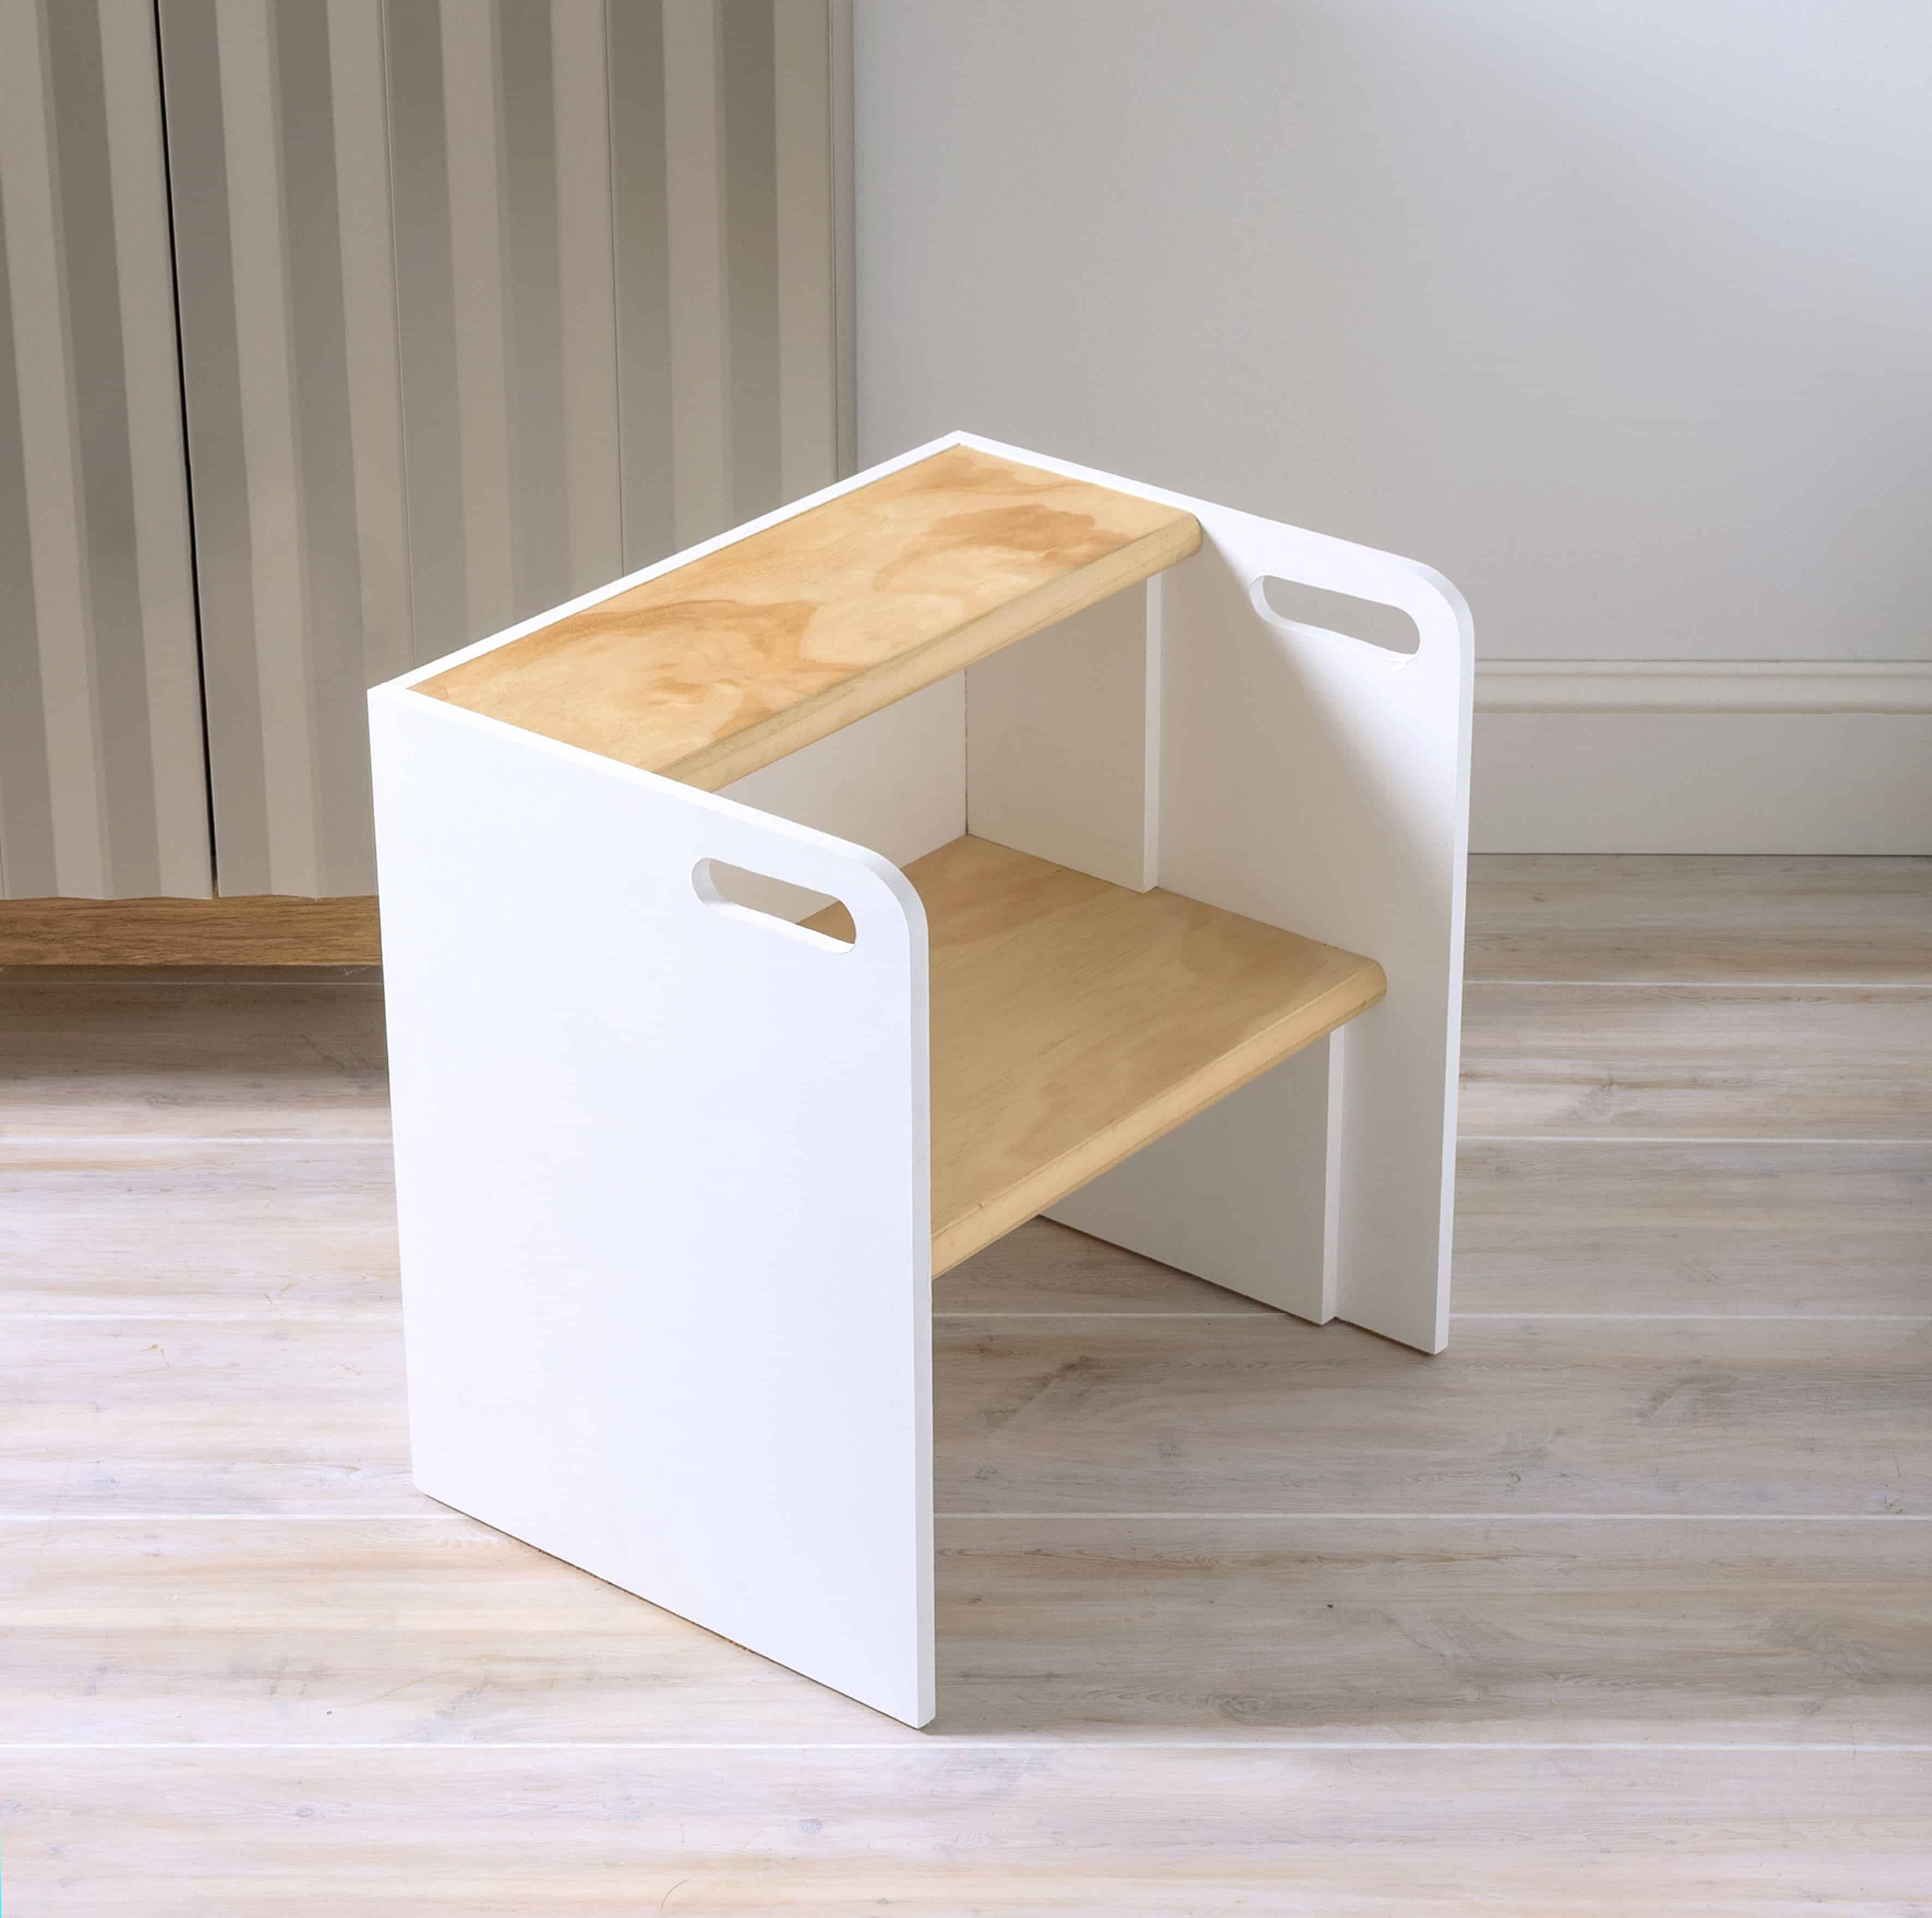 wooden step stool chair ikea dining room covers uk diy diycandy